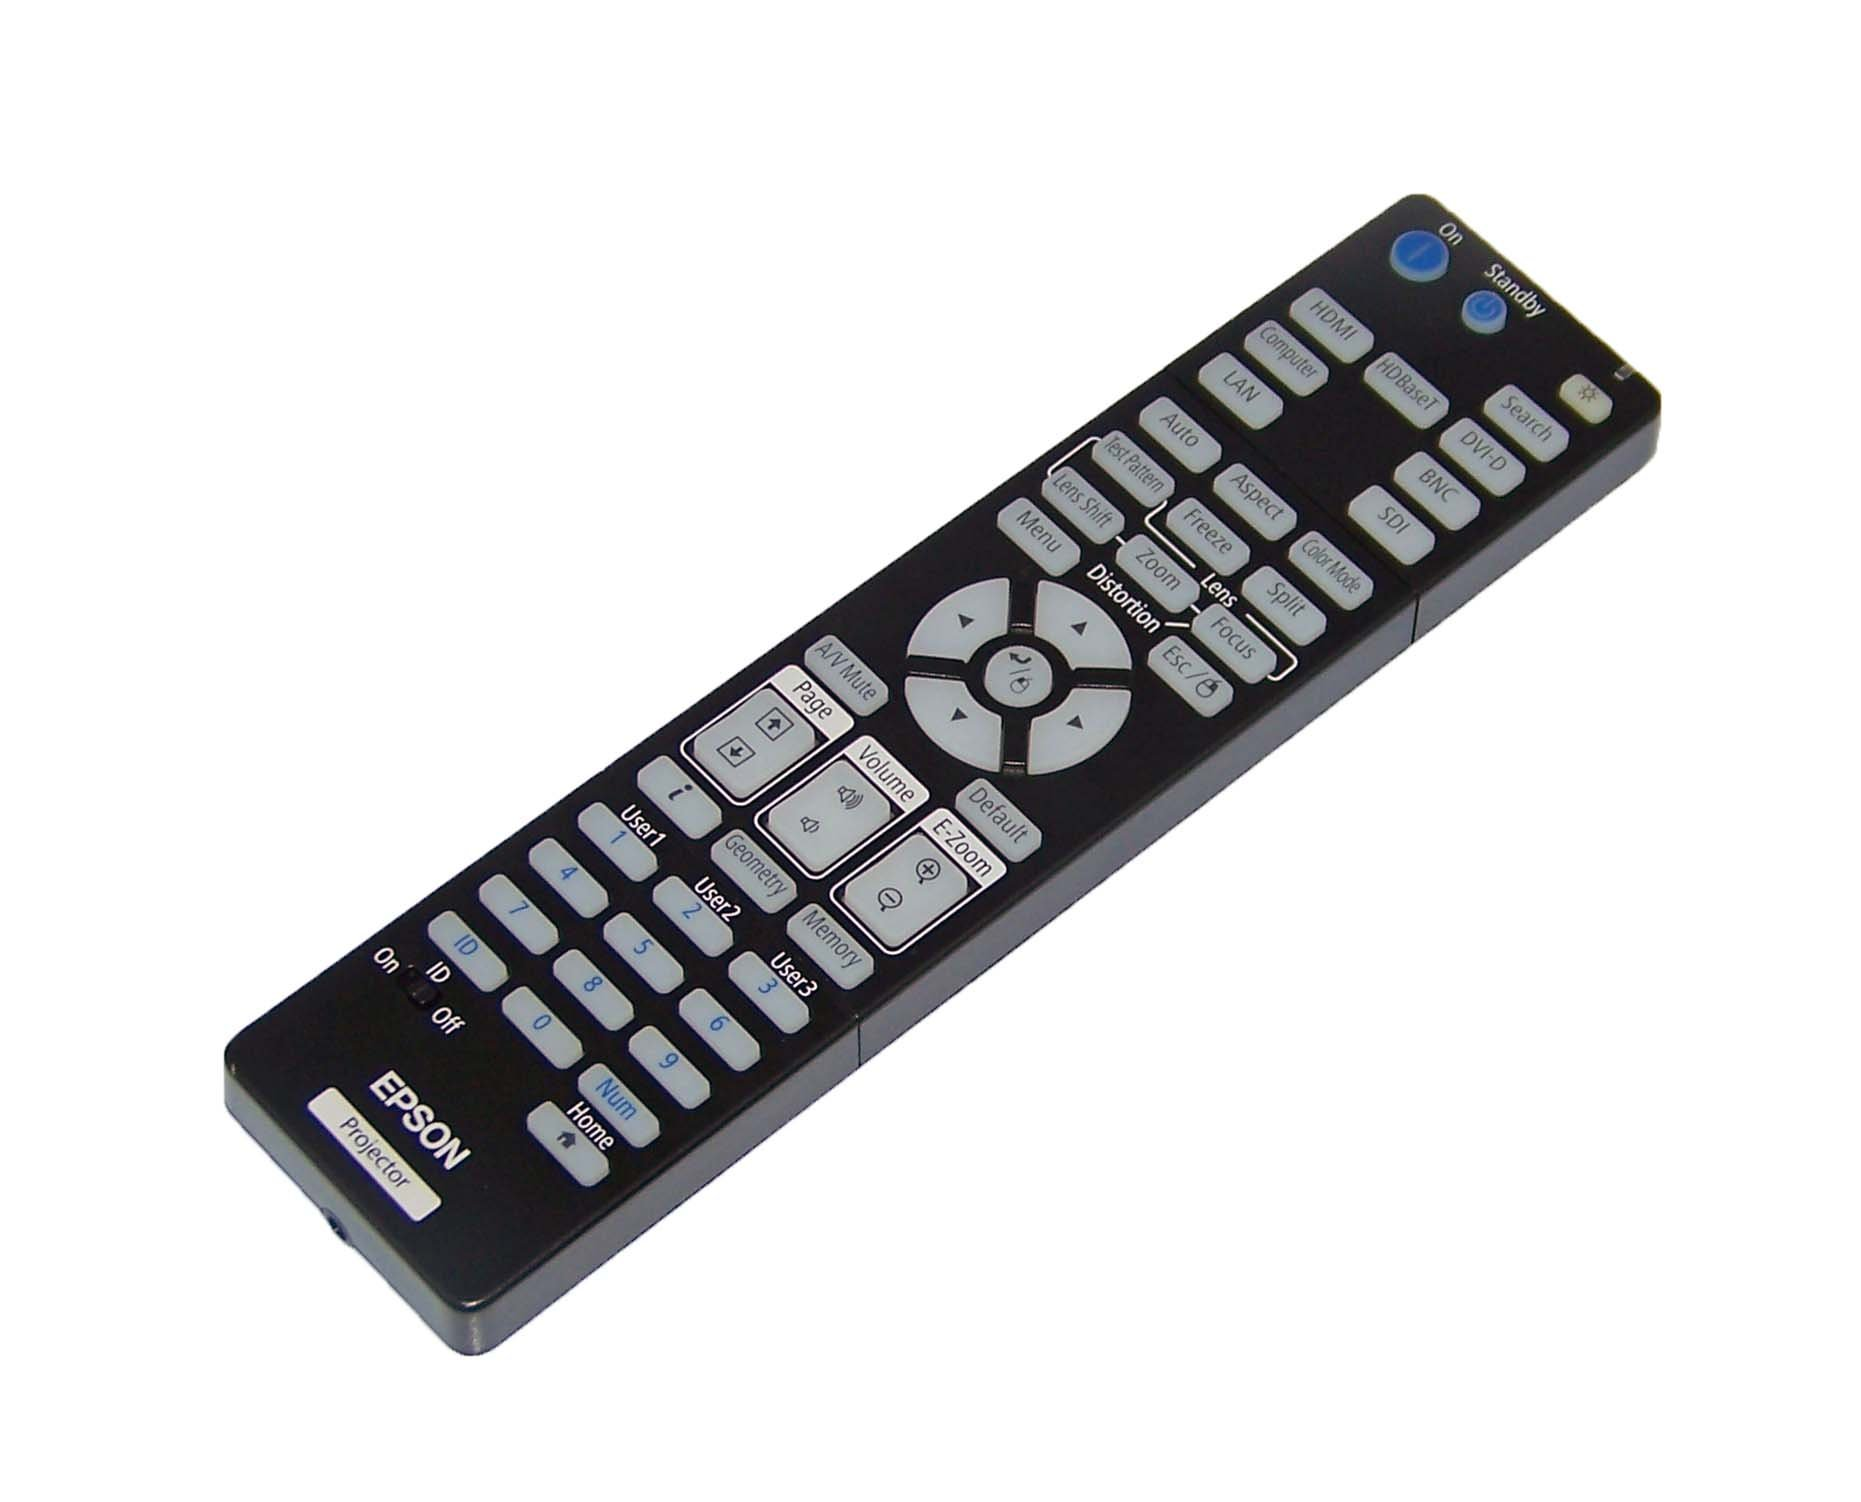 OEM Epson Projector Remote Control for Epson Pro L1500U, L1505U, L1405U, L1300U, L1200U, L1100U